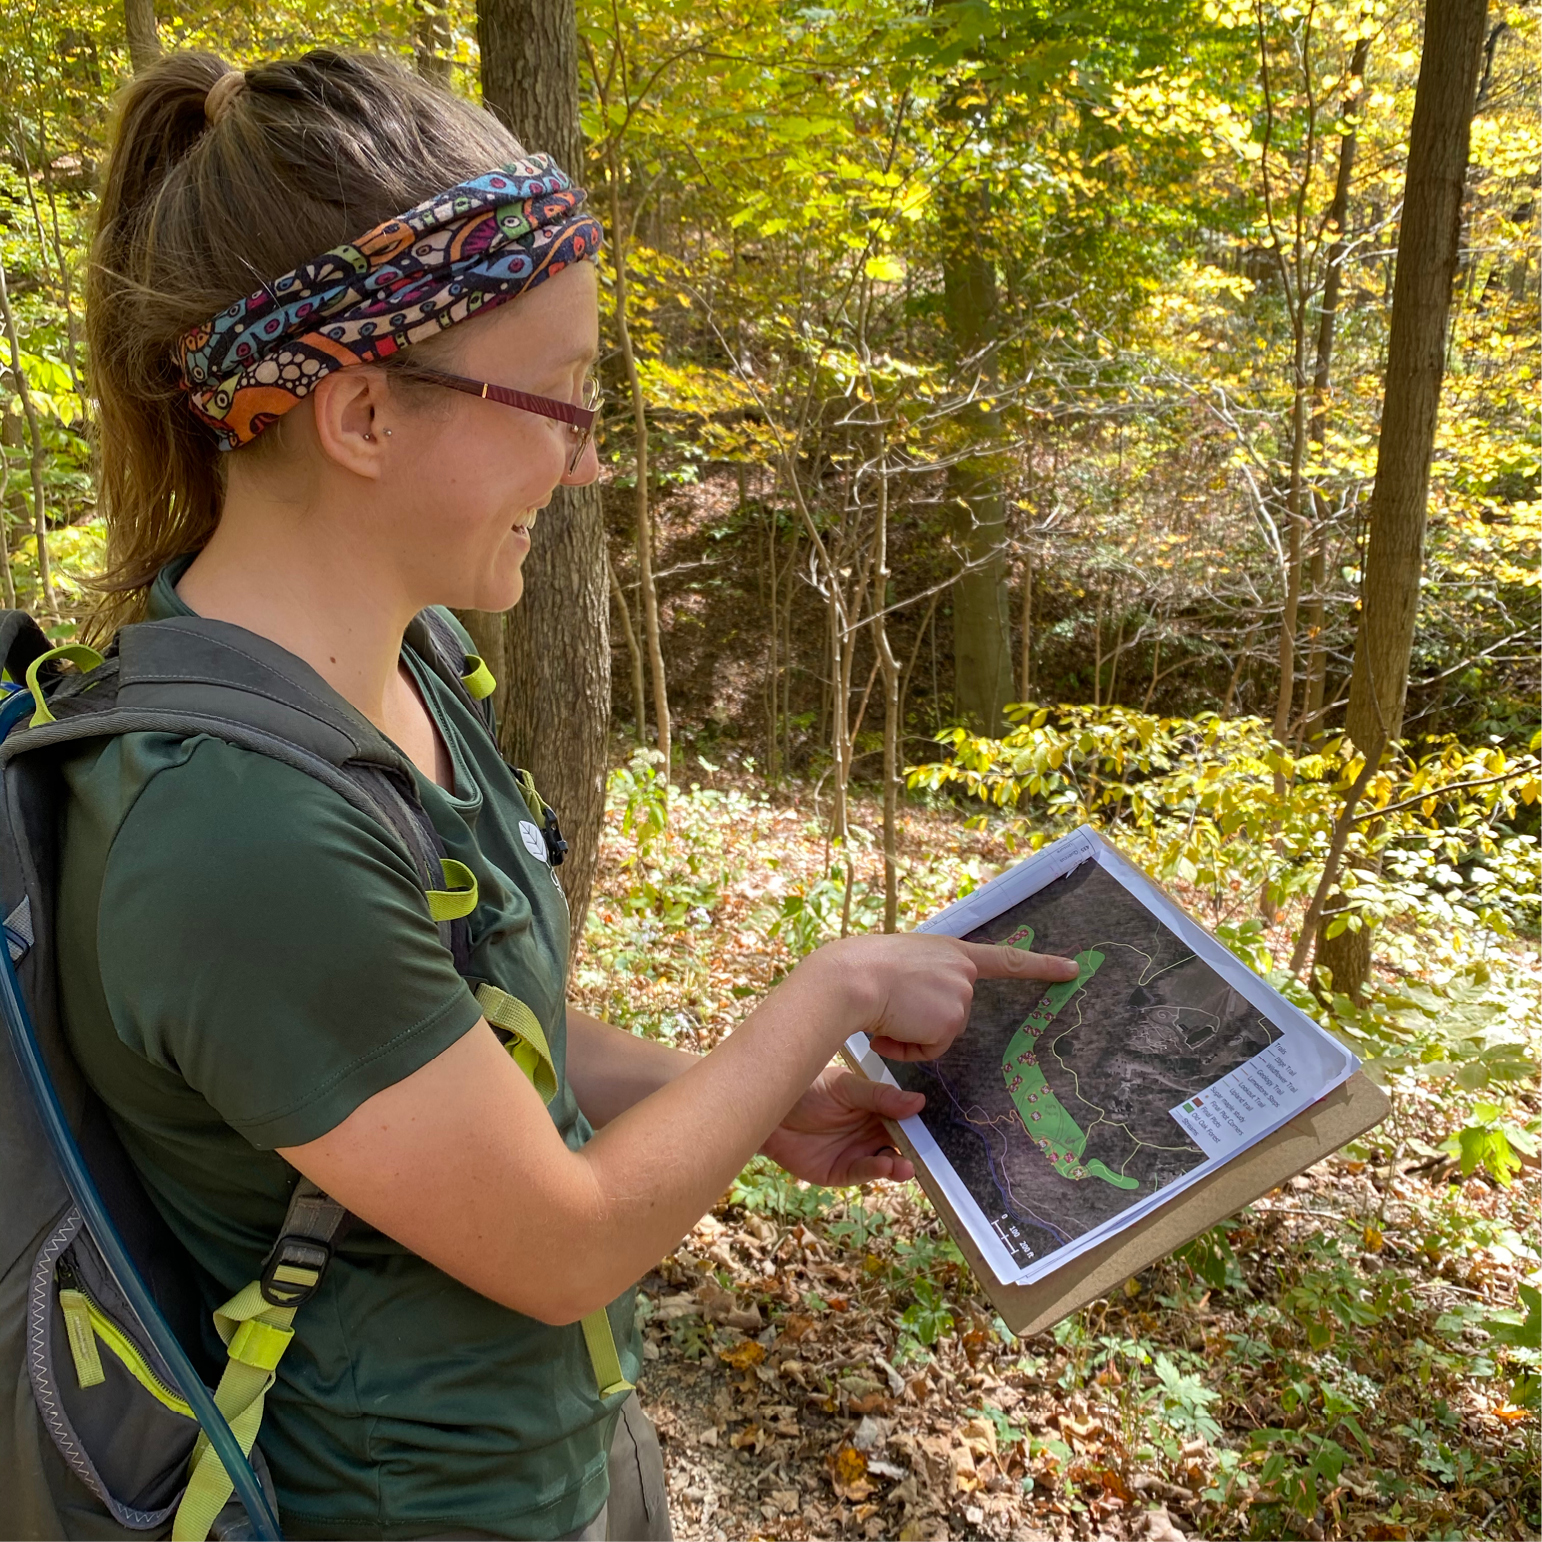 Danie Frevola, a young white woman, points to a map in a forest as she conducts her research at Rowe Woods